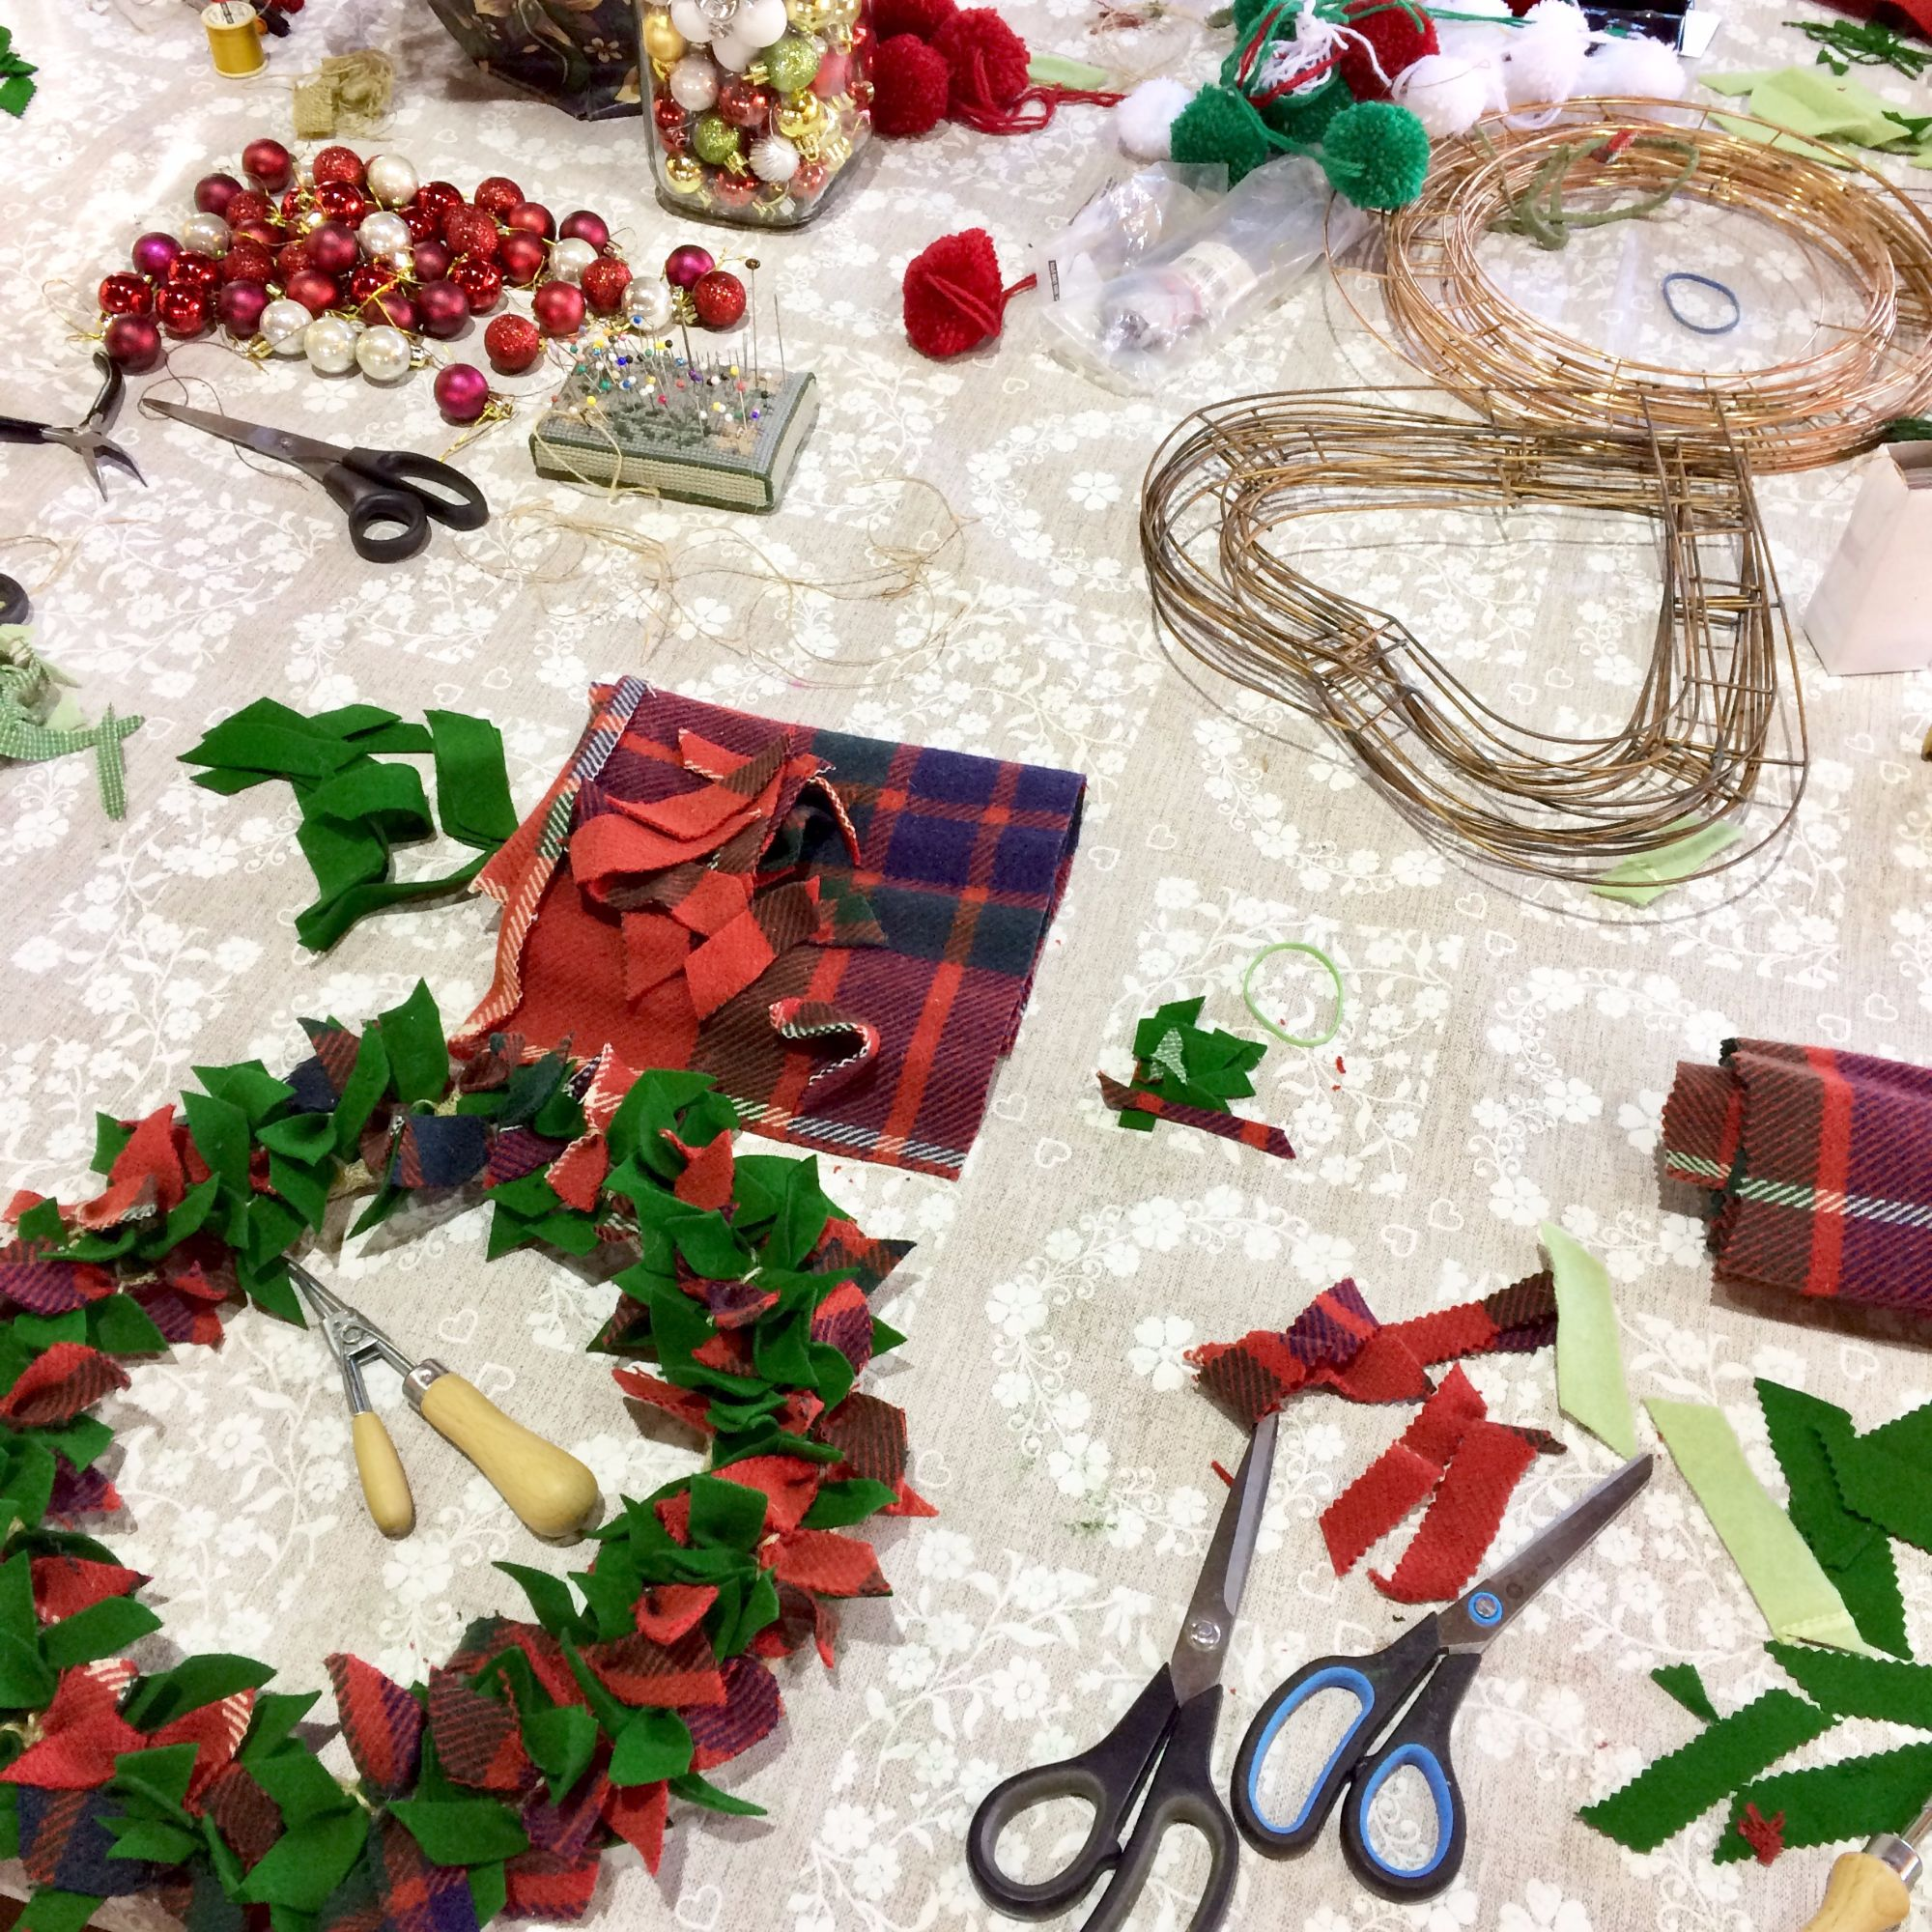 Rag Wreath Making Workshop 1